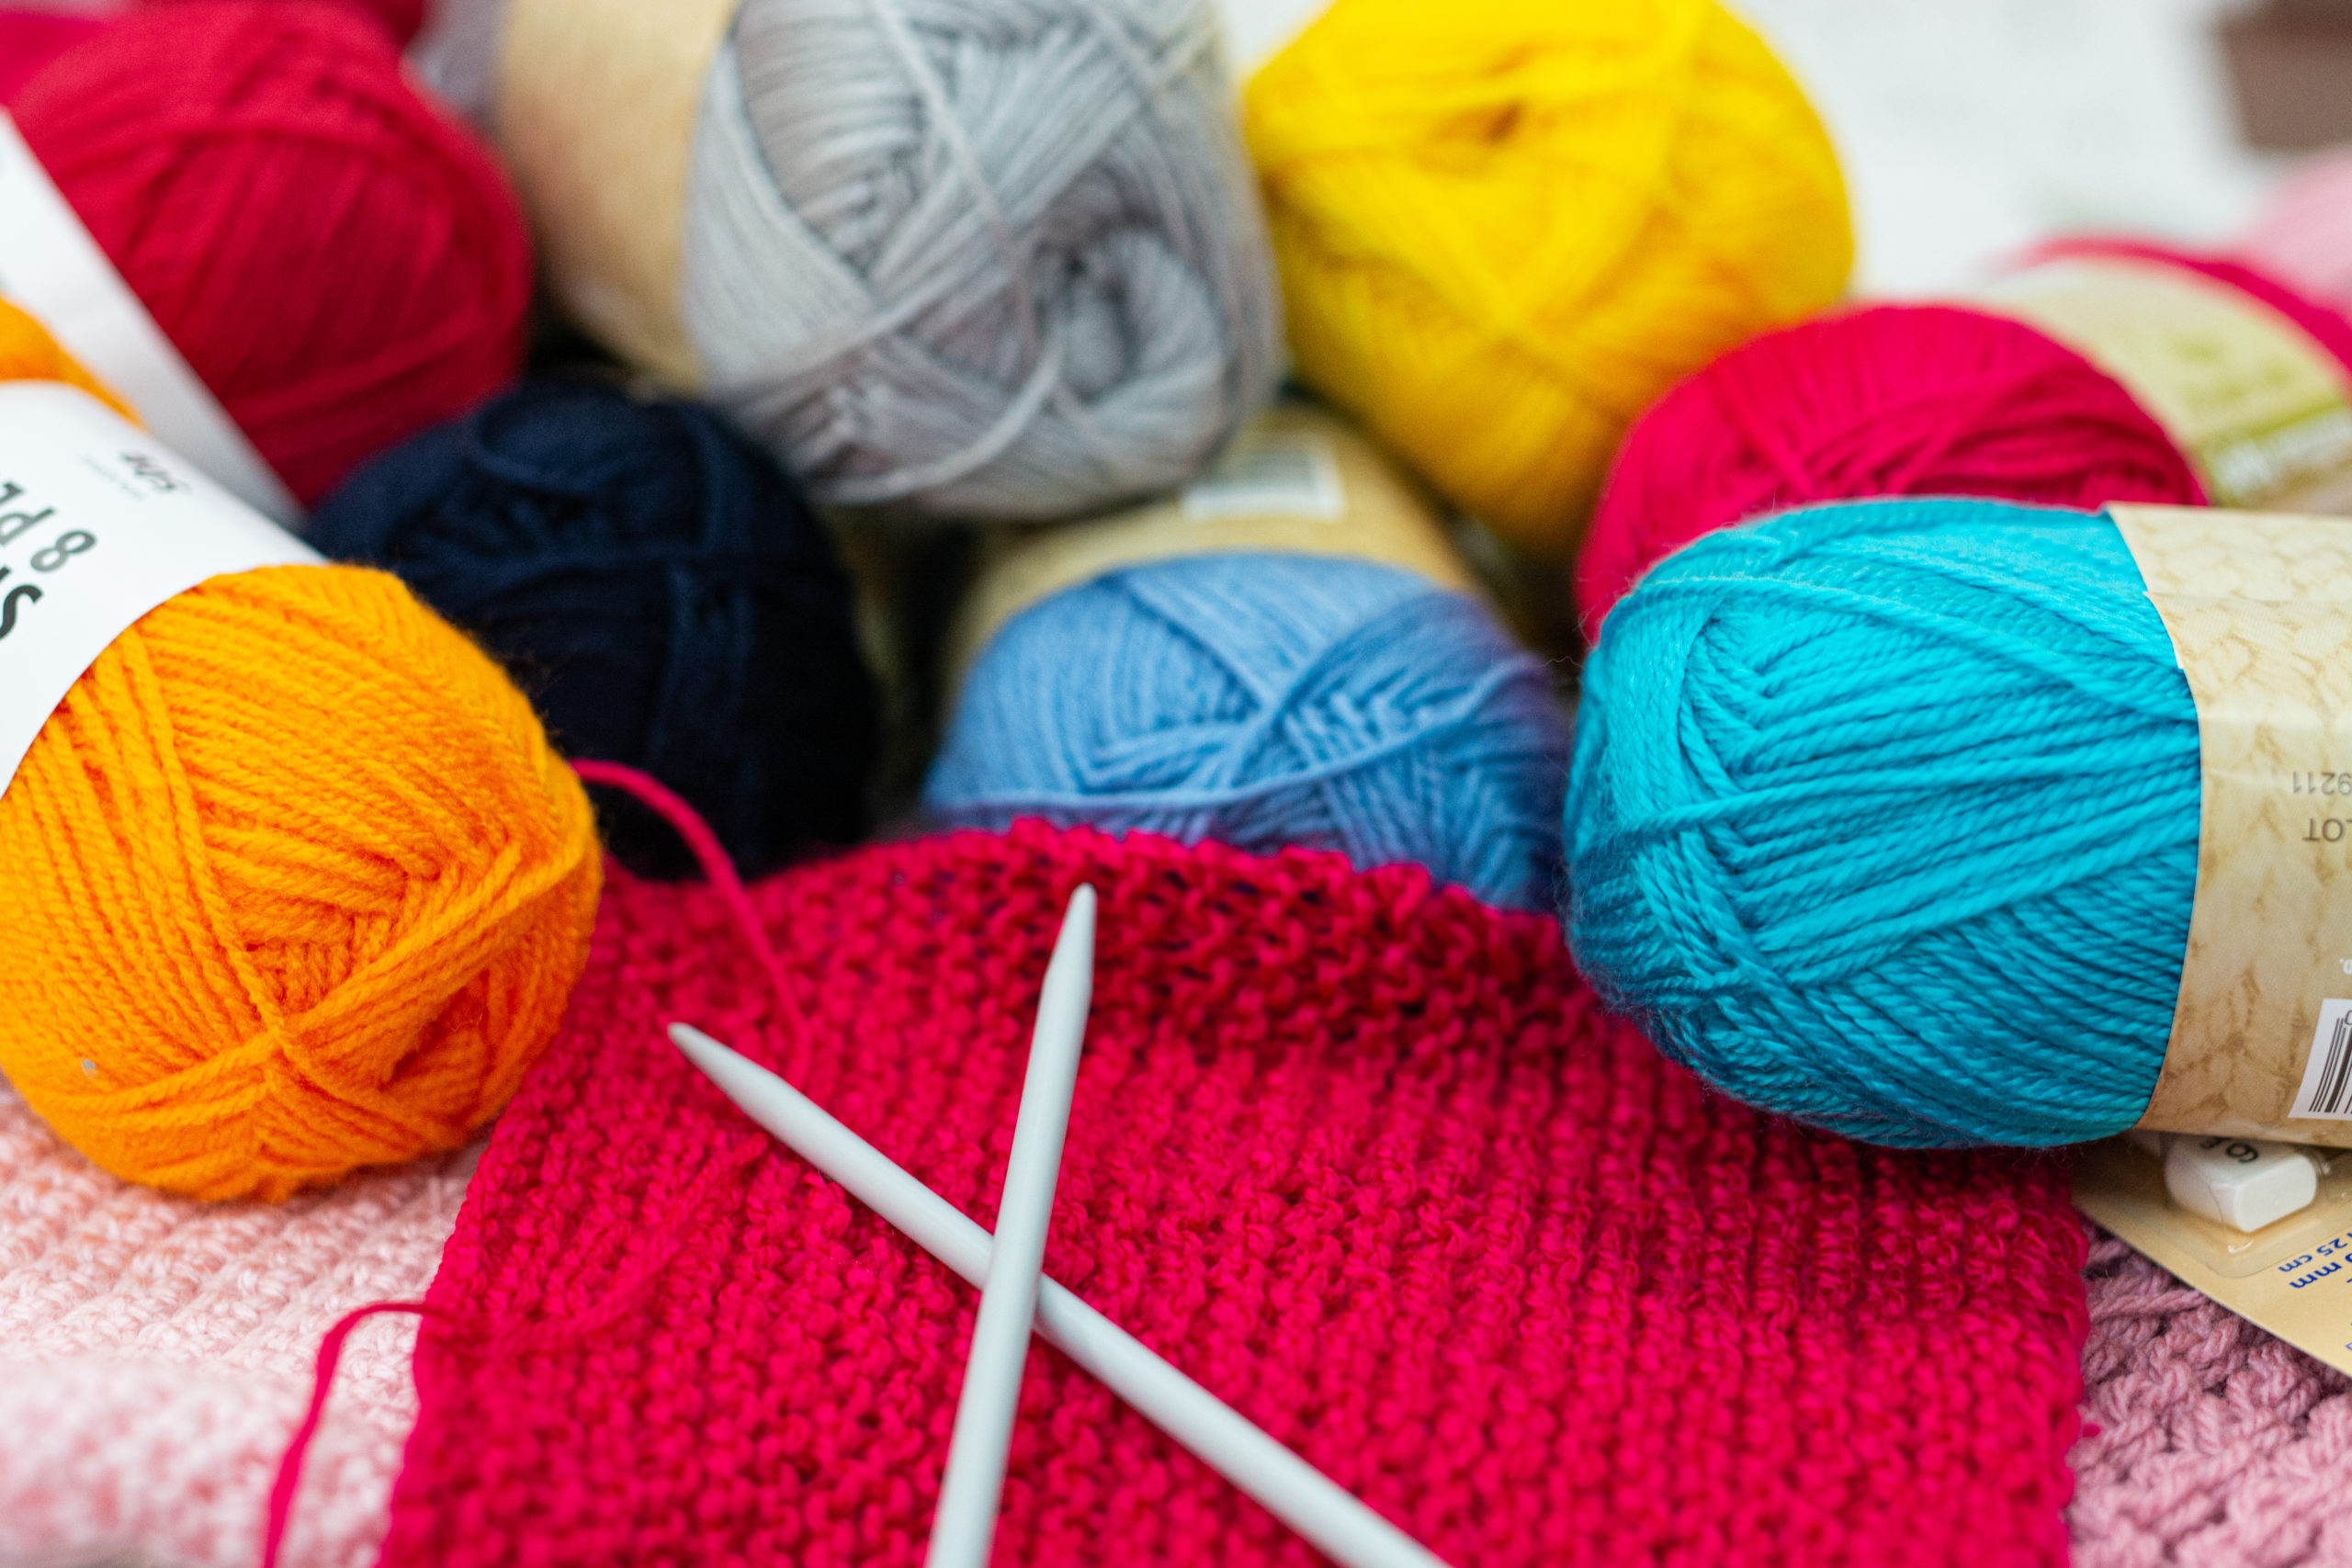 Knitting and/or Crocheting For Community Blanket/s